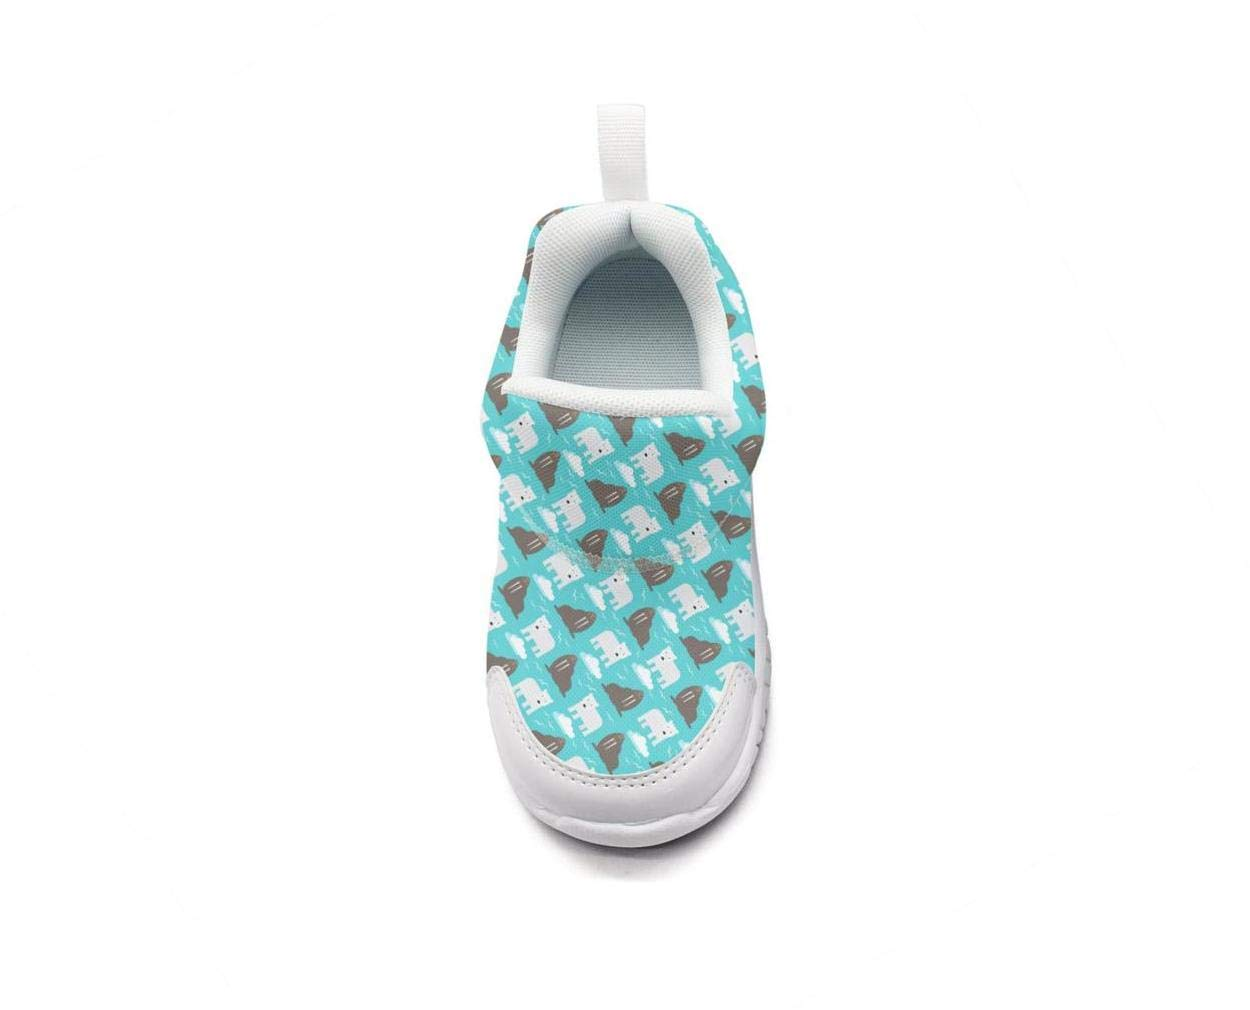 ONEYUAN Children Polar Bear and Seal Animal Kid Casual Lightweight Sport Shoes Sneakers Running Shoes